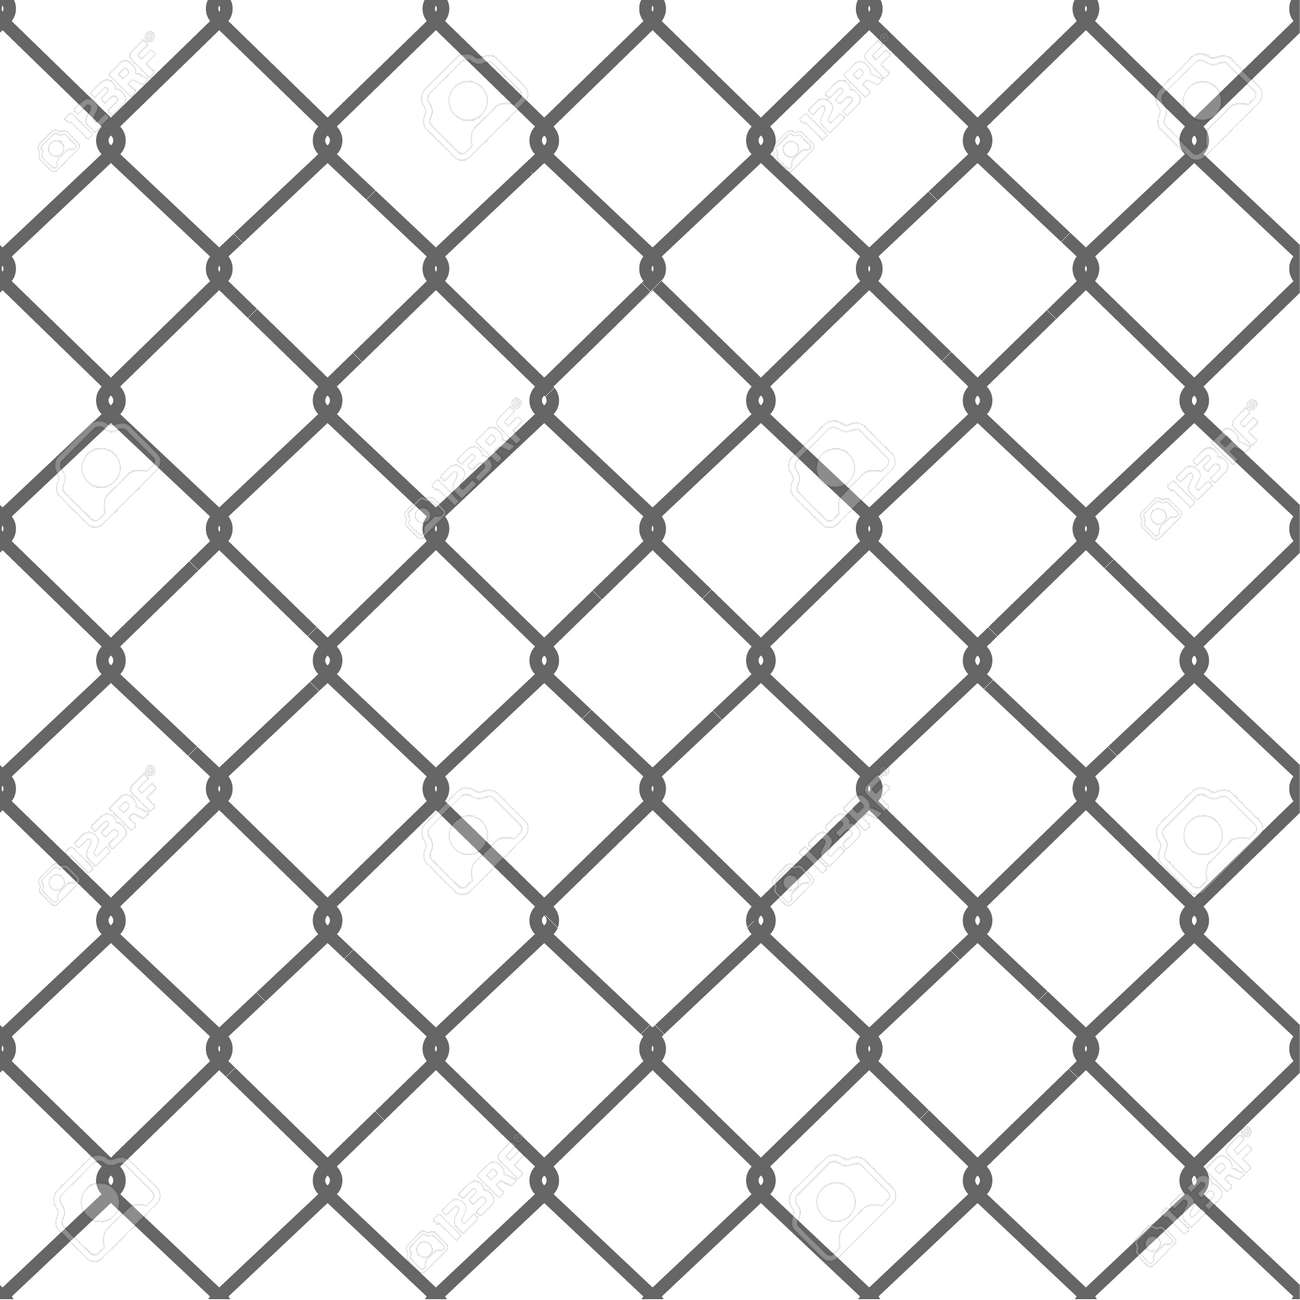 Seamless Wire Mesh. Net. Cage. Vector illustration - 40761557